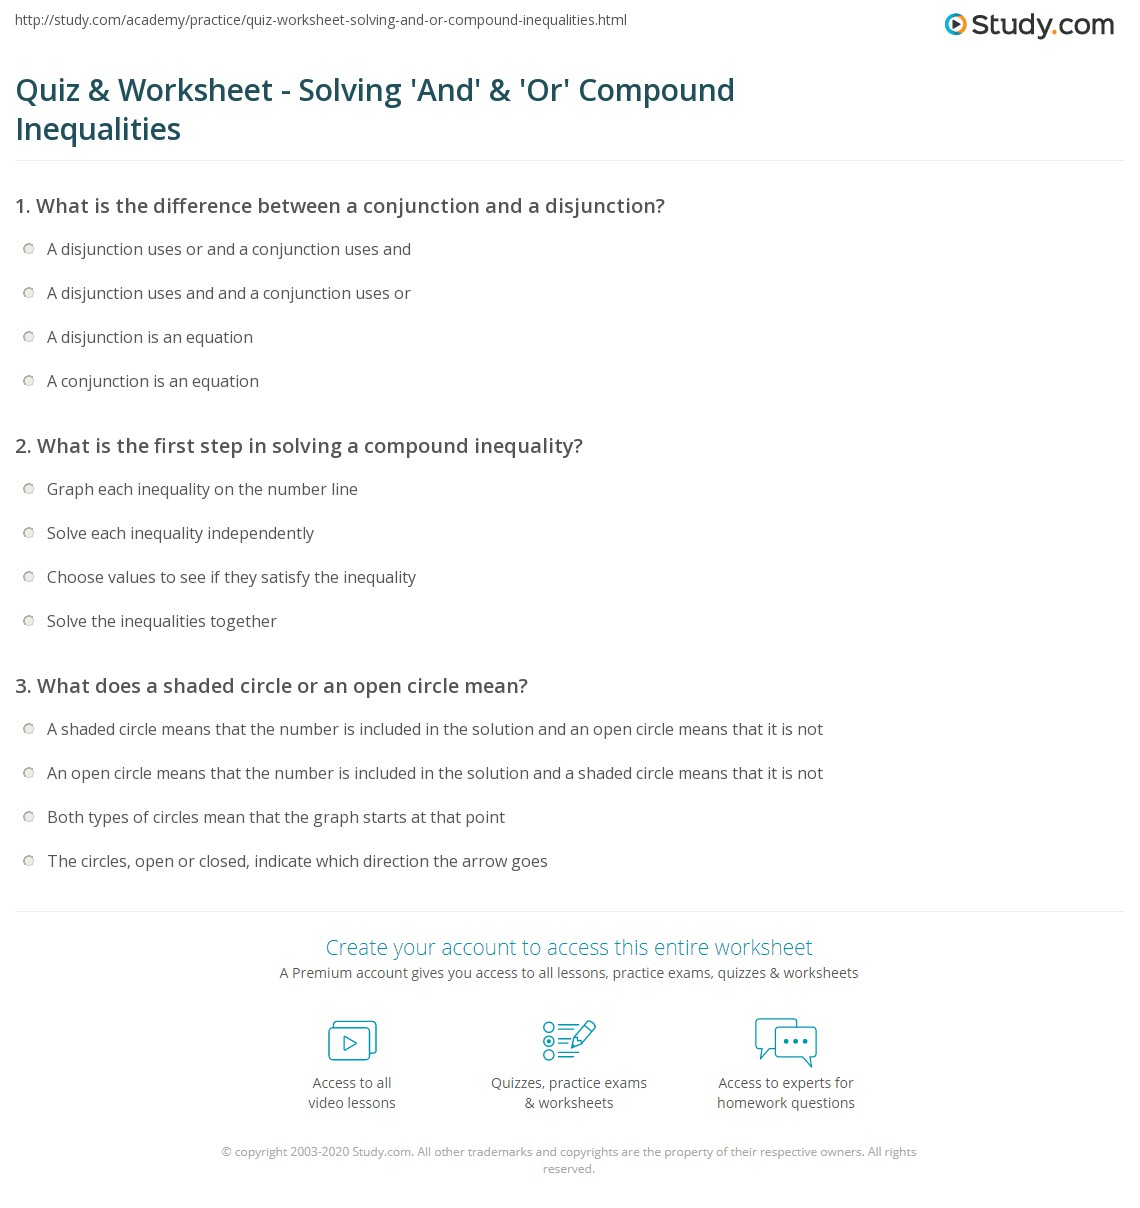 Quiz Worksheet Solving And Or Compound Inequalities – Inequalities on a Number Line Worksheet